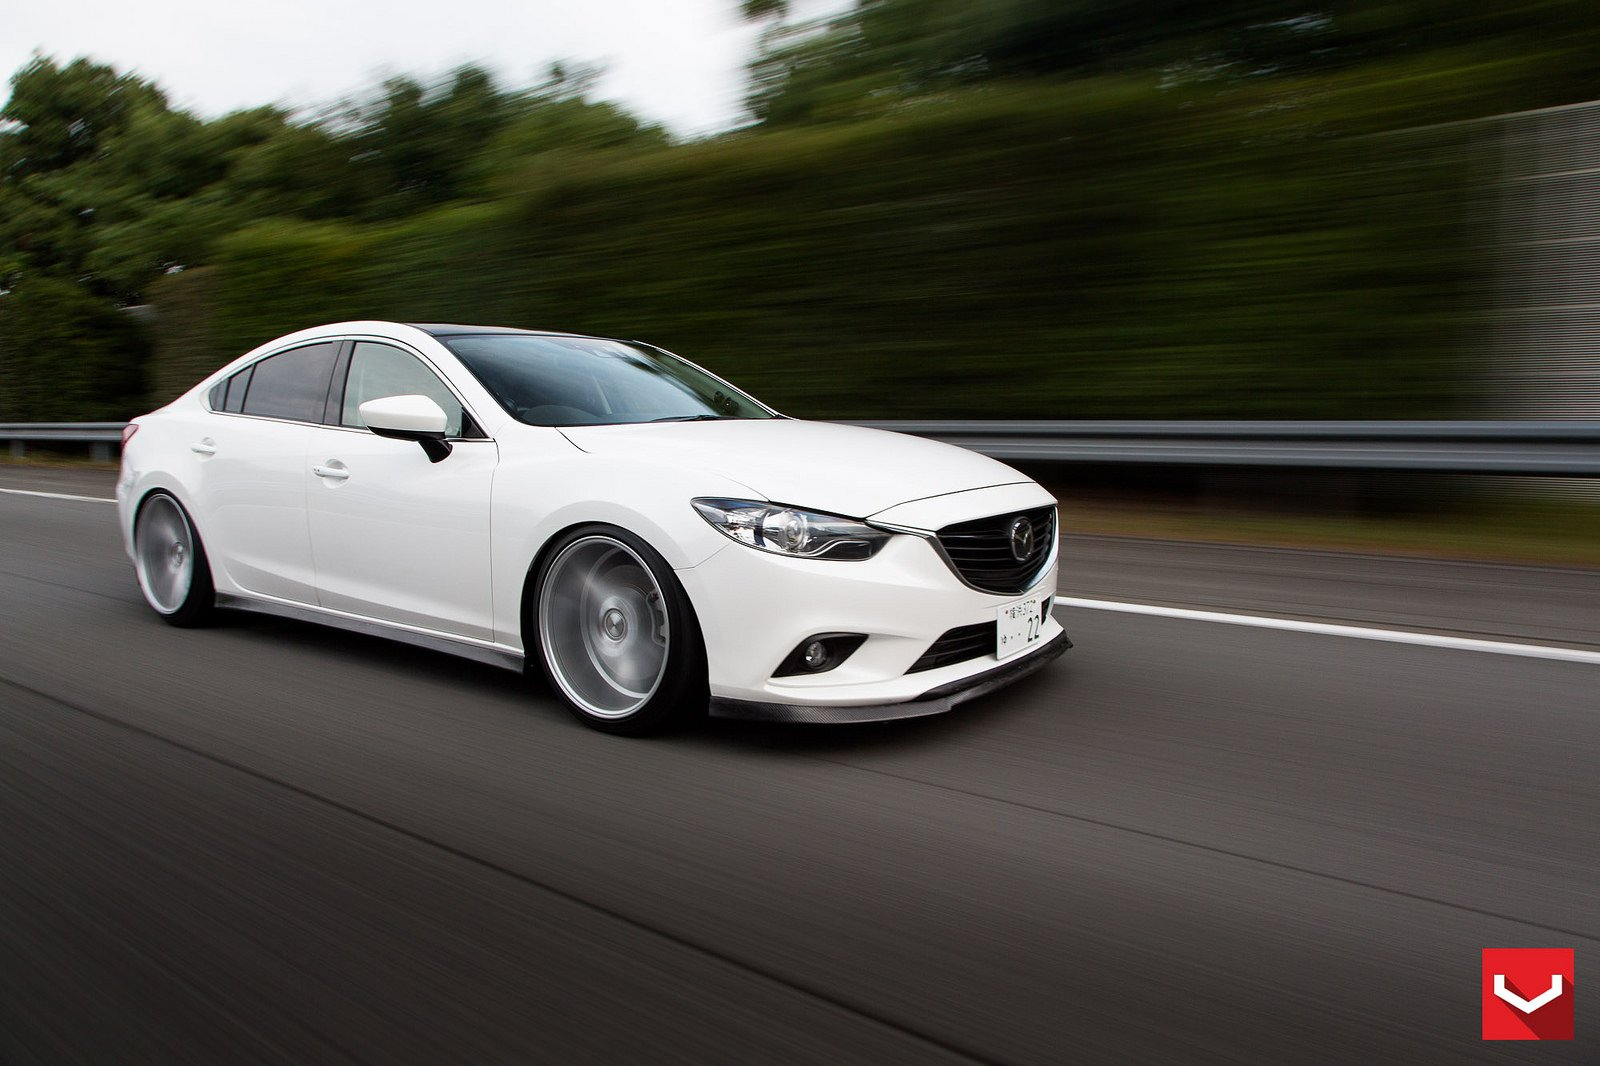 vossen wheels mazda 6 white tuning cars wallpaper. Black Bedroom Furniture Sets. Home Design Ideas